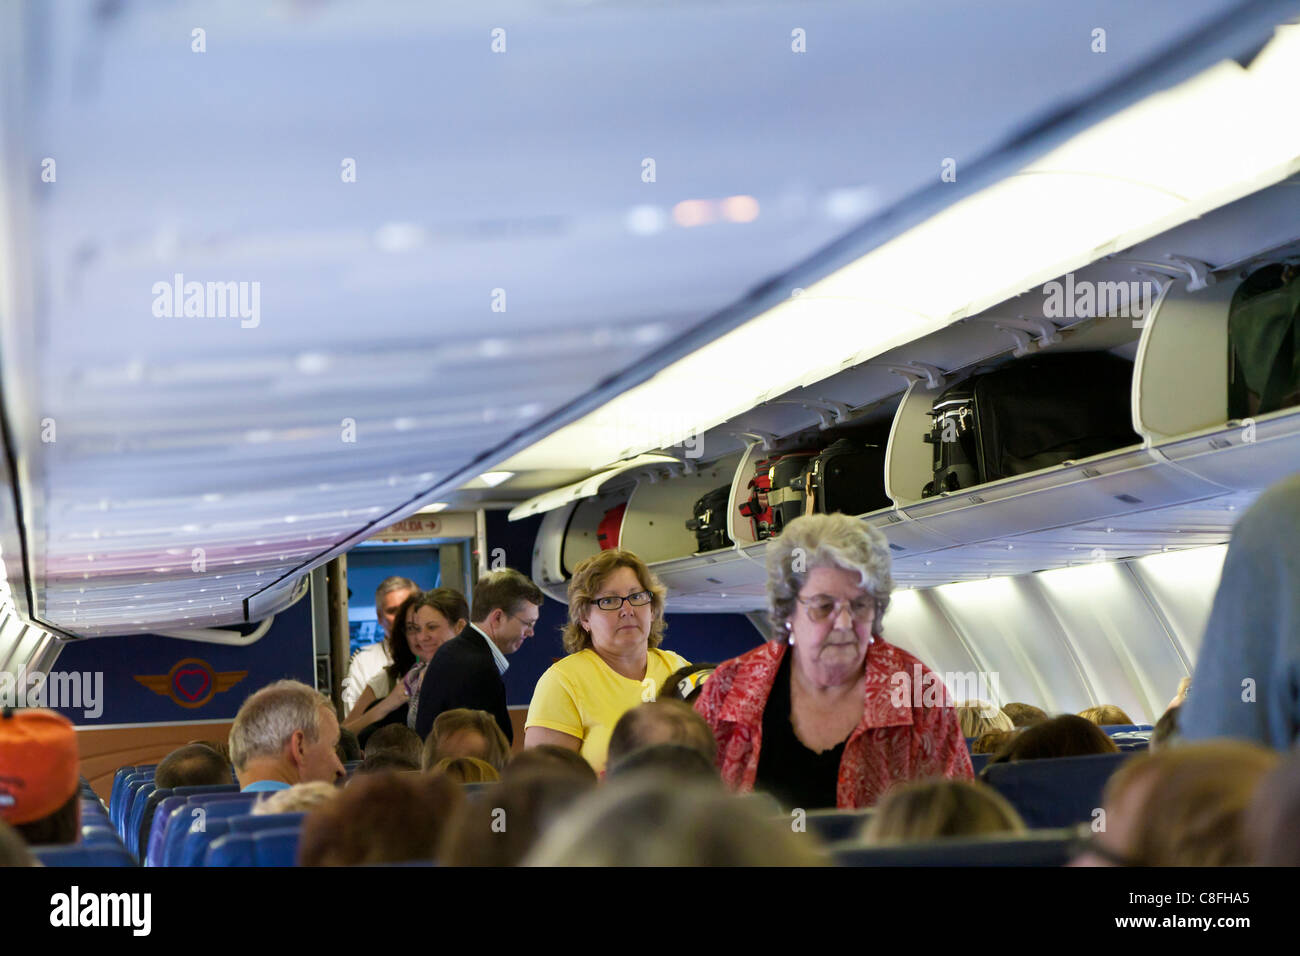 Passengers boarding Southwest Airlines jet in Orlando, Florida - Stock Image